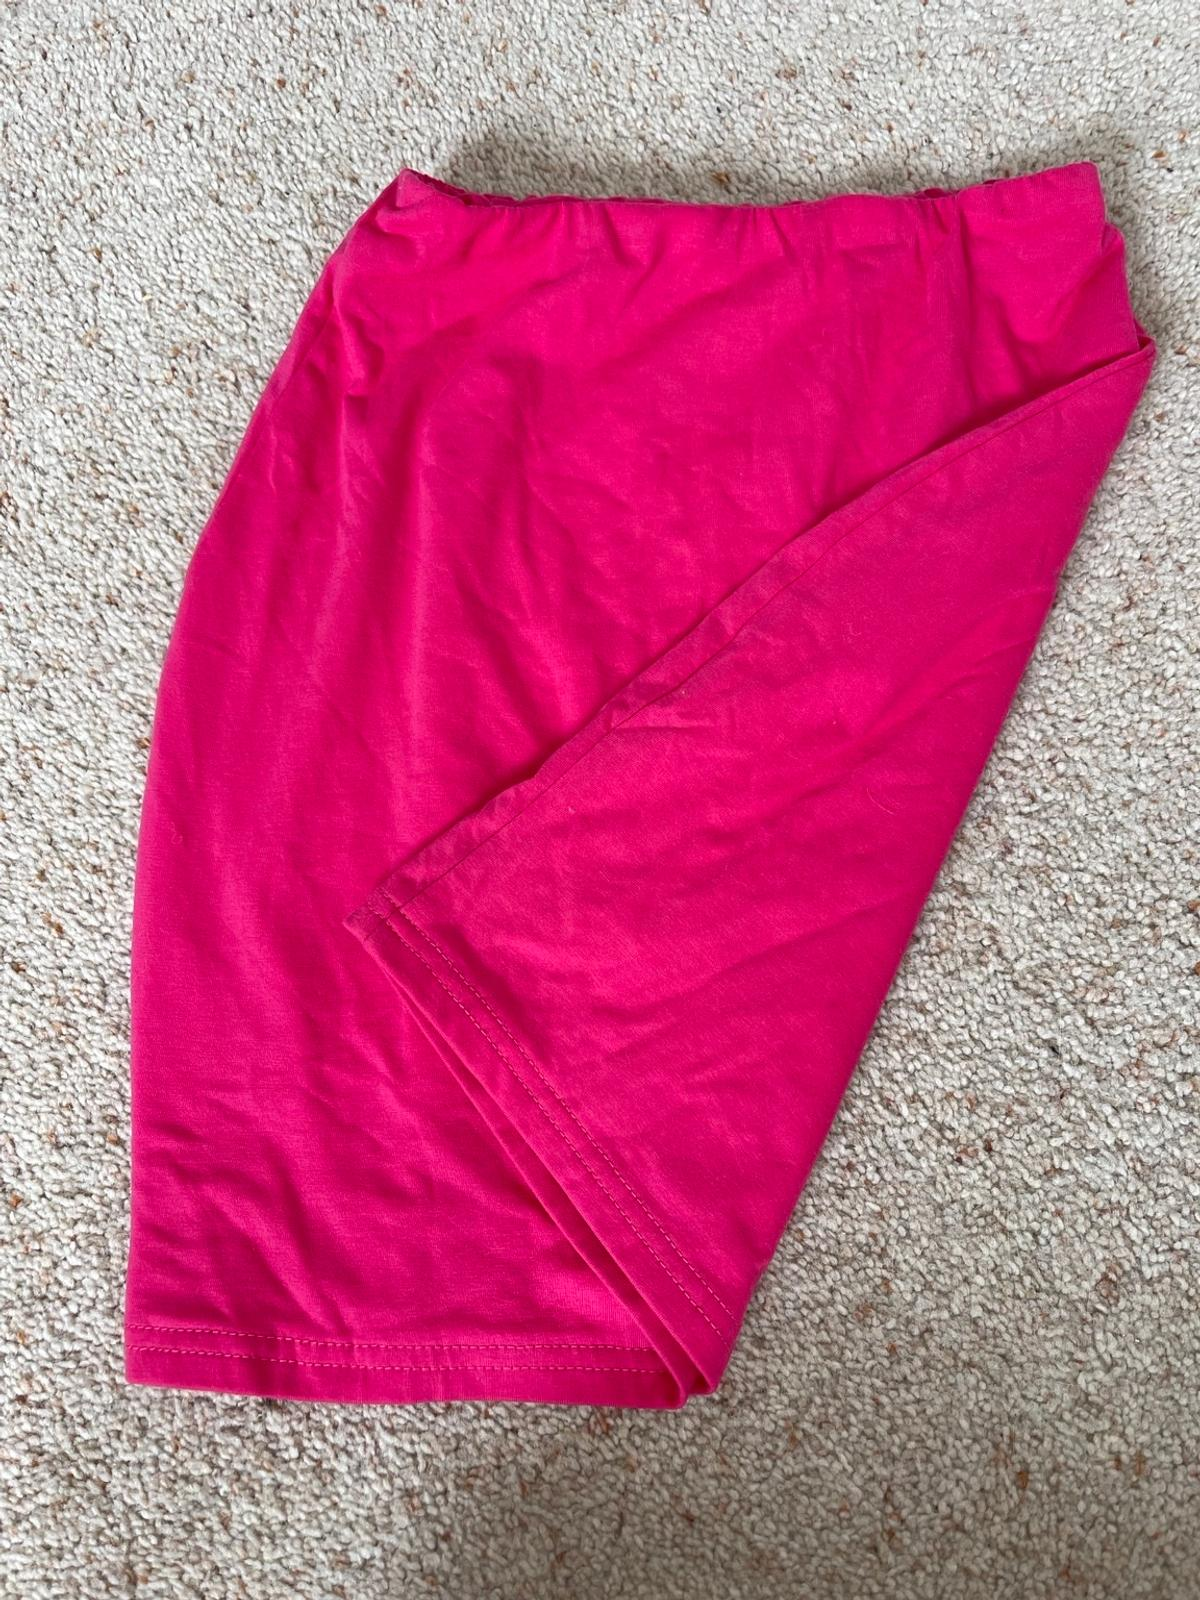 Topshop quality pink bodycon mini skirt. Tags have been removed but has only been worn to try on. Immaculate condition. Collection or happy to post at buyers cost.